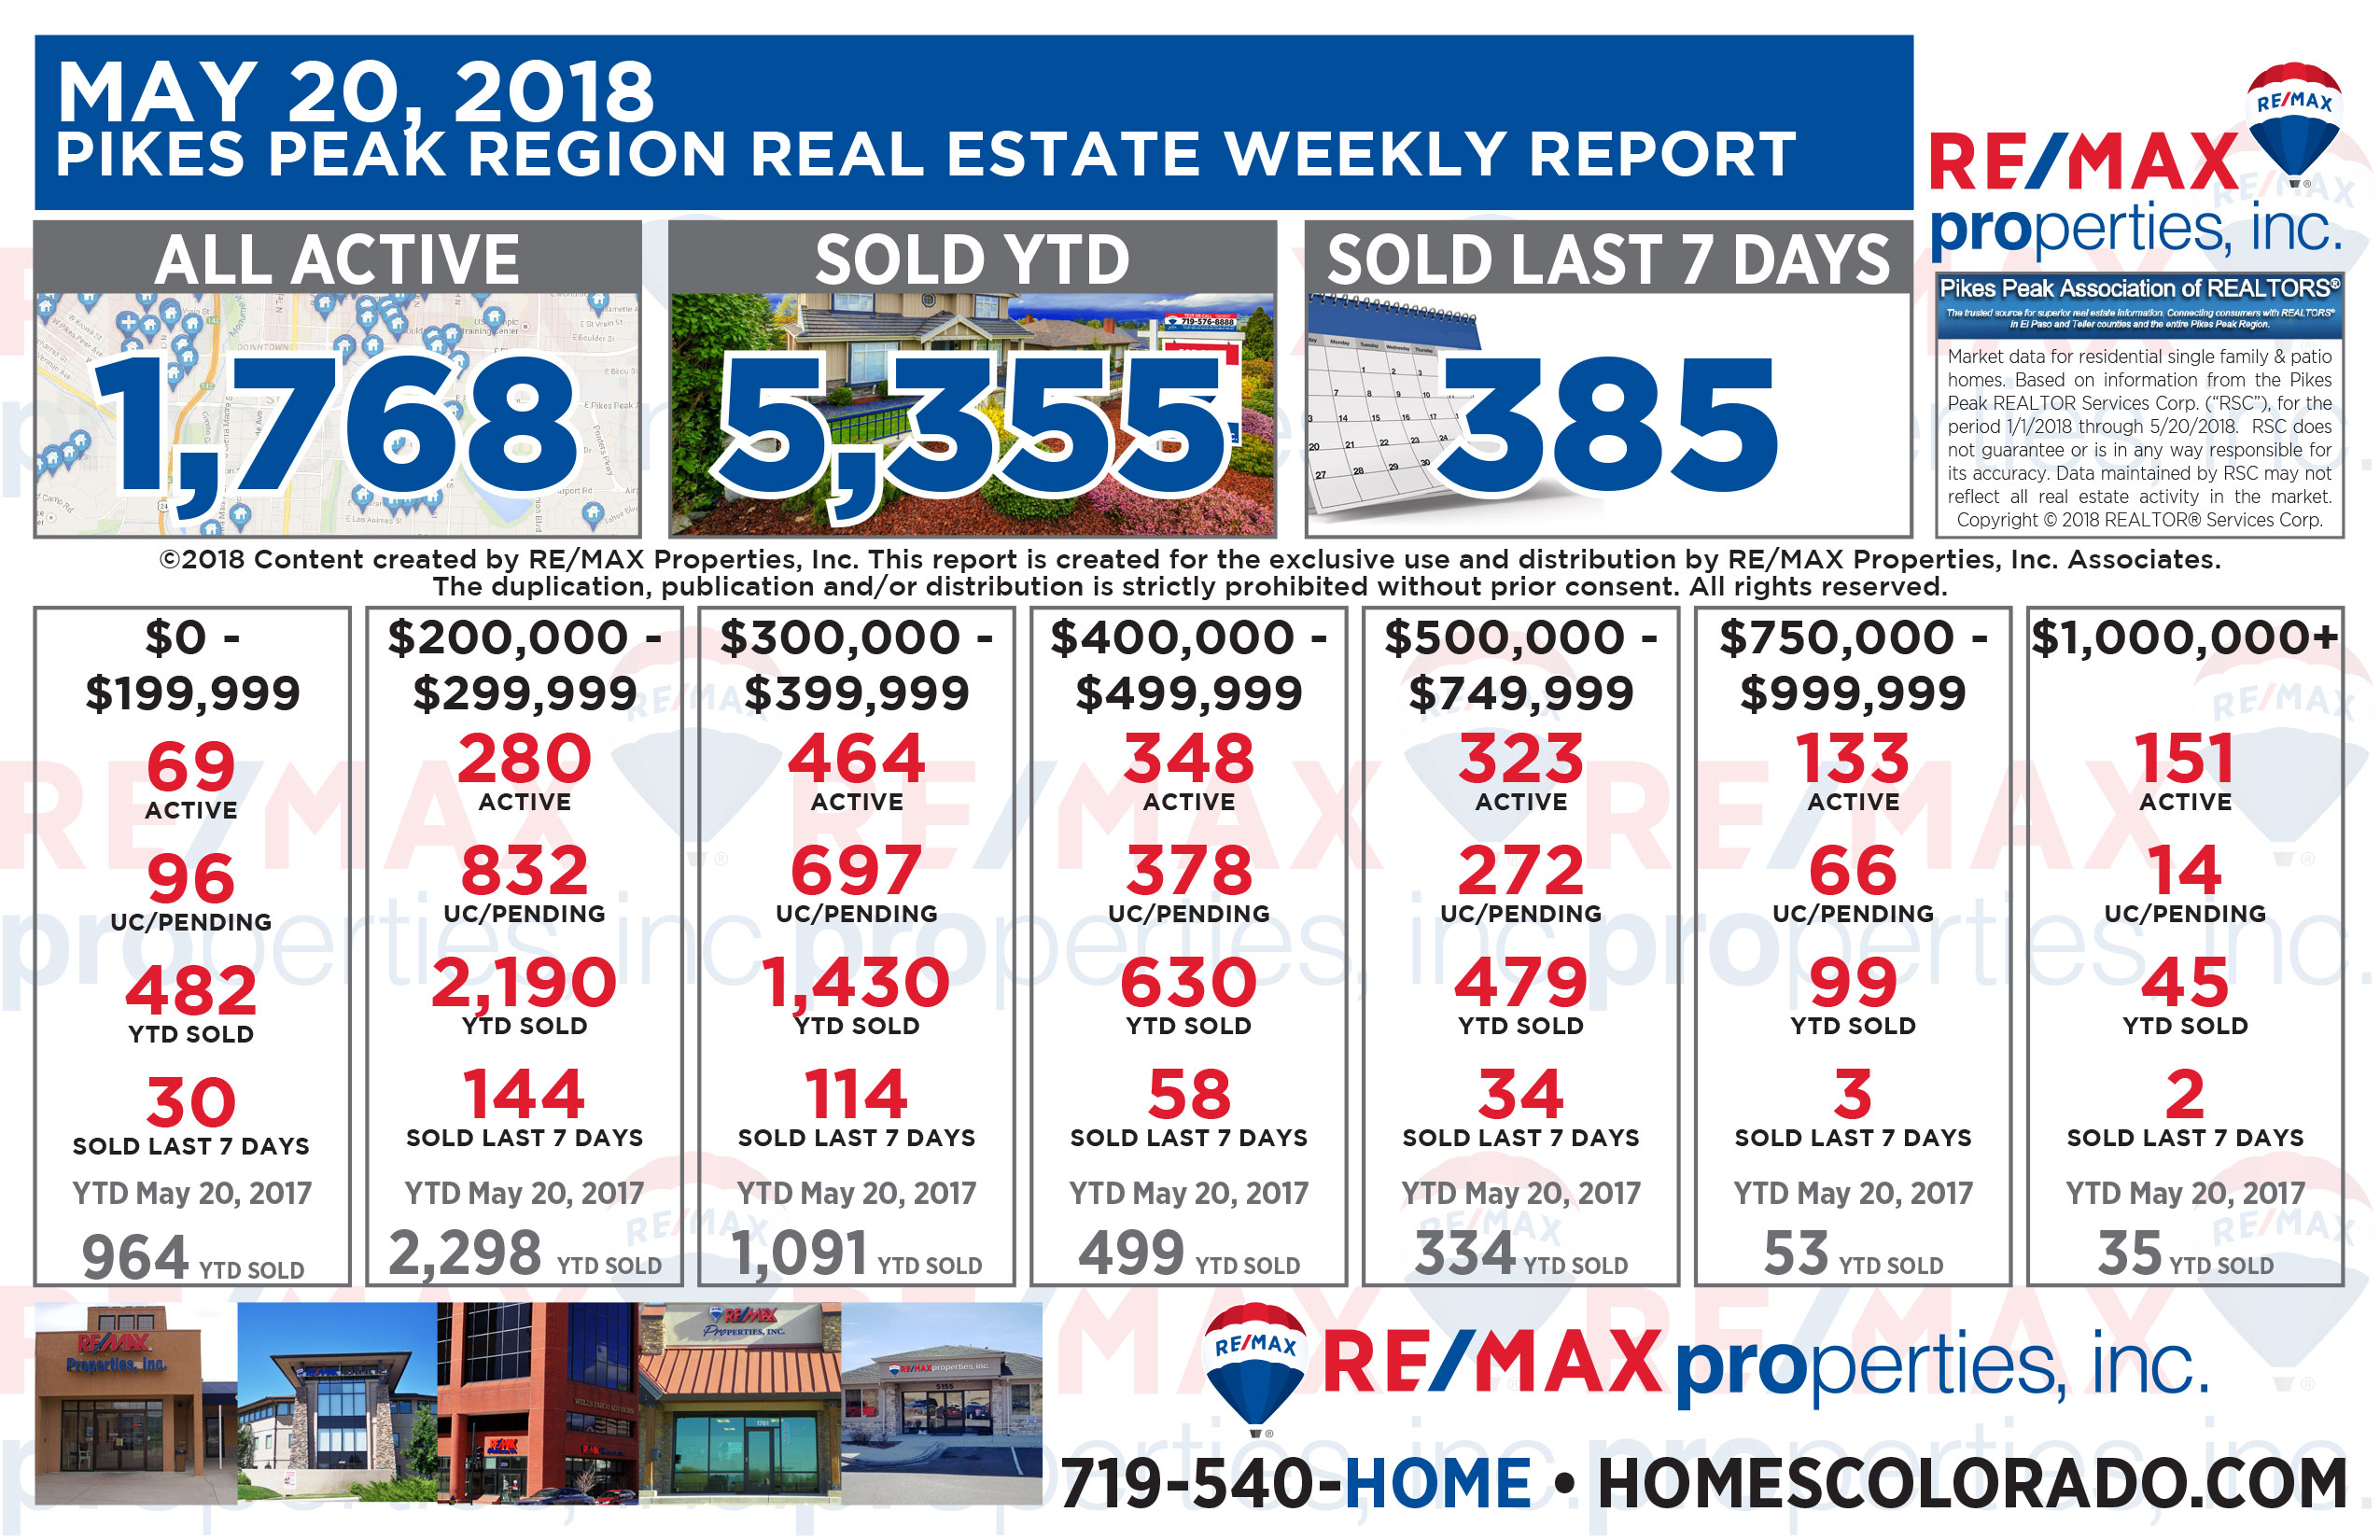 Homes priced $750 on up are moving fast! If ever there was a time to list your home it?s now. RE/MAX